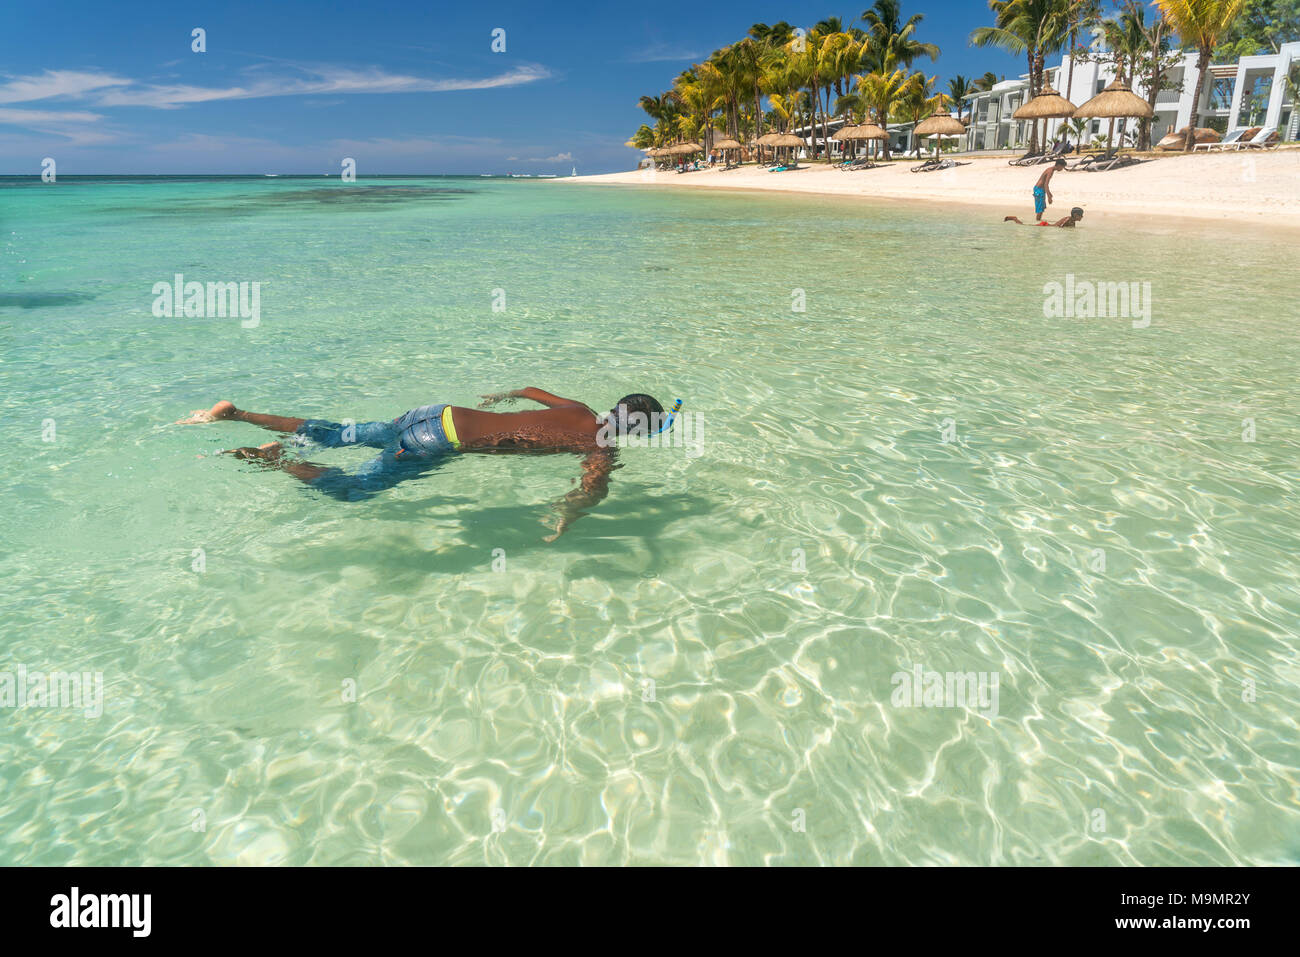 Snorkeling in the Turtle Bay, Mauritius - Stock Image